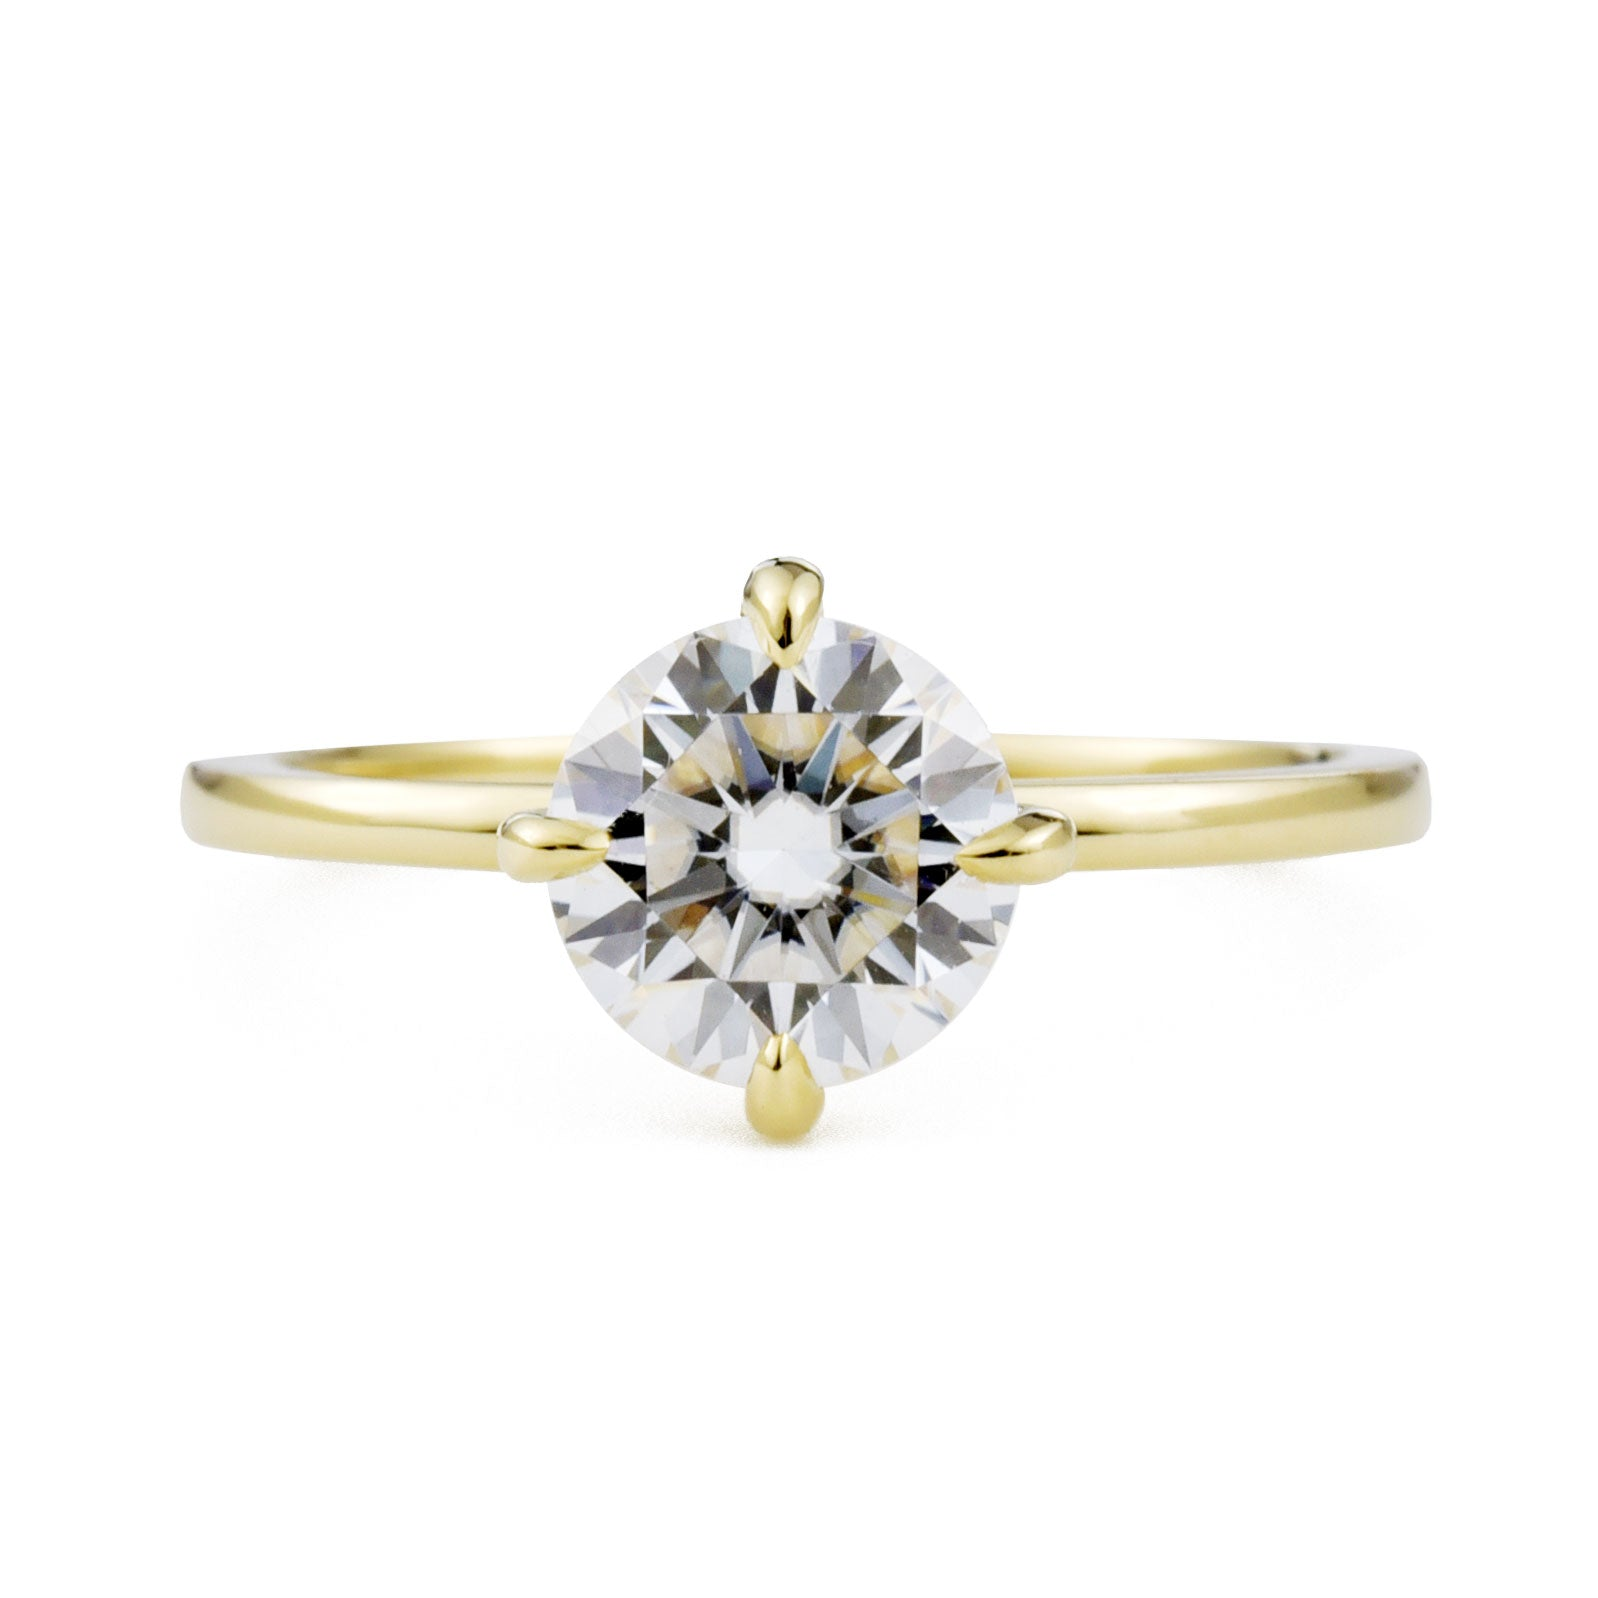 Vera 1ct Moissanite Solitaire Engagement Ring in yellow gold